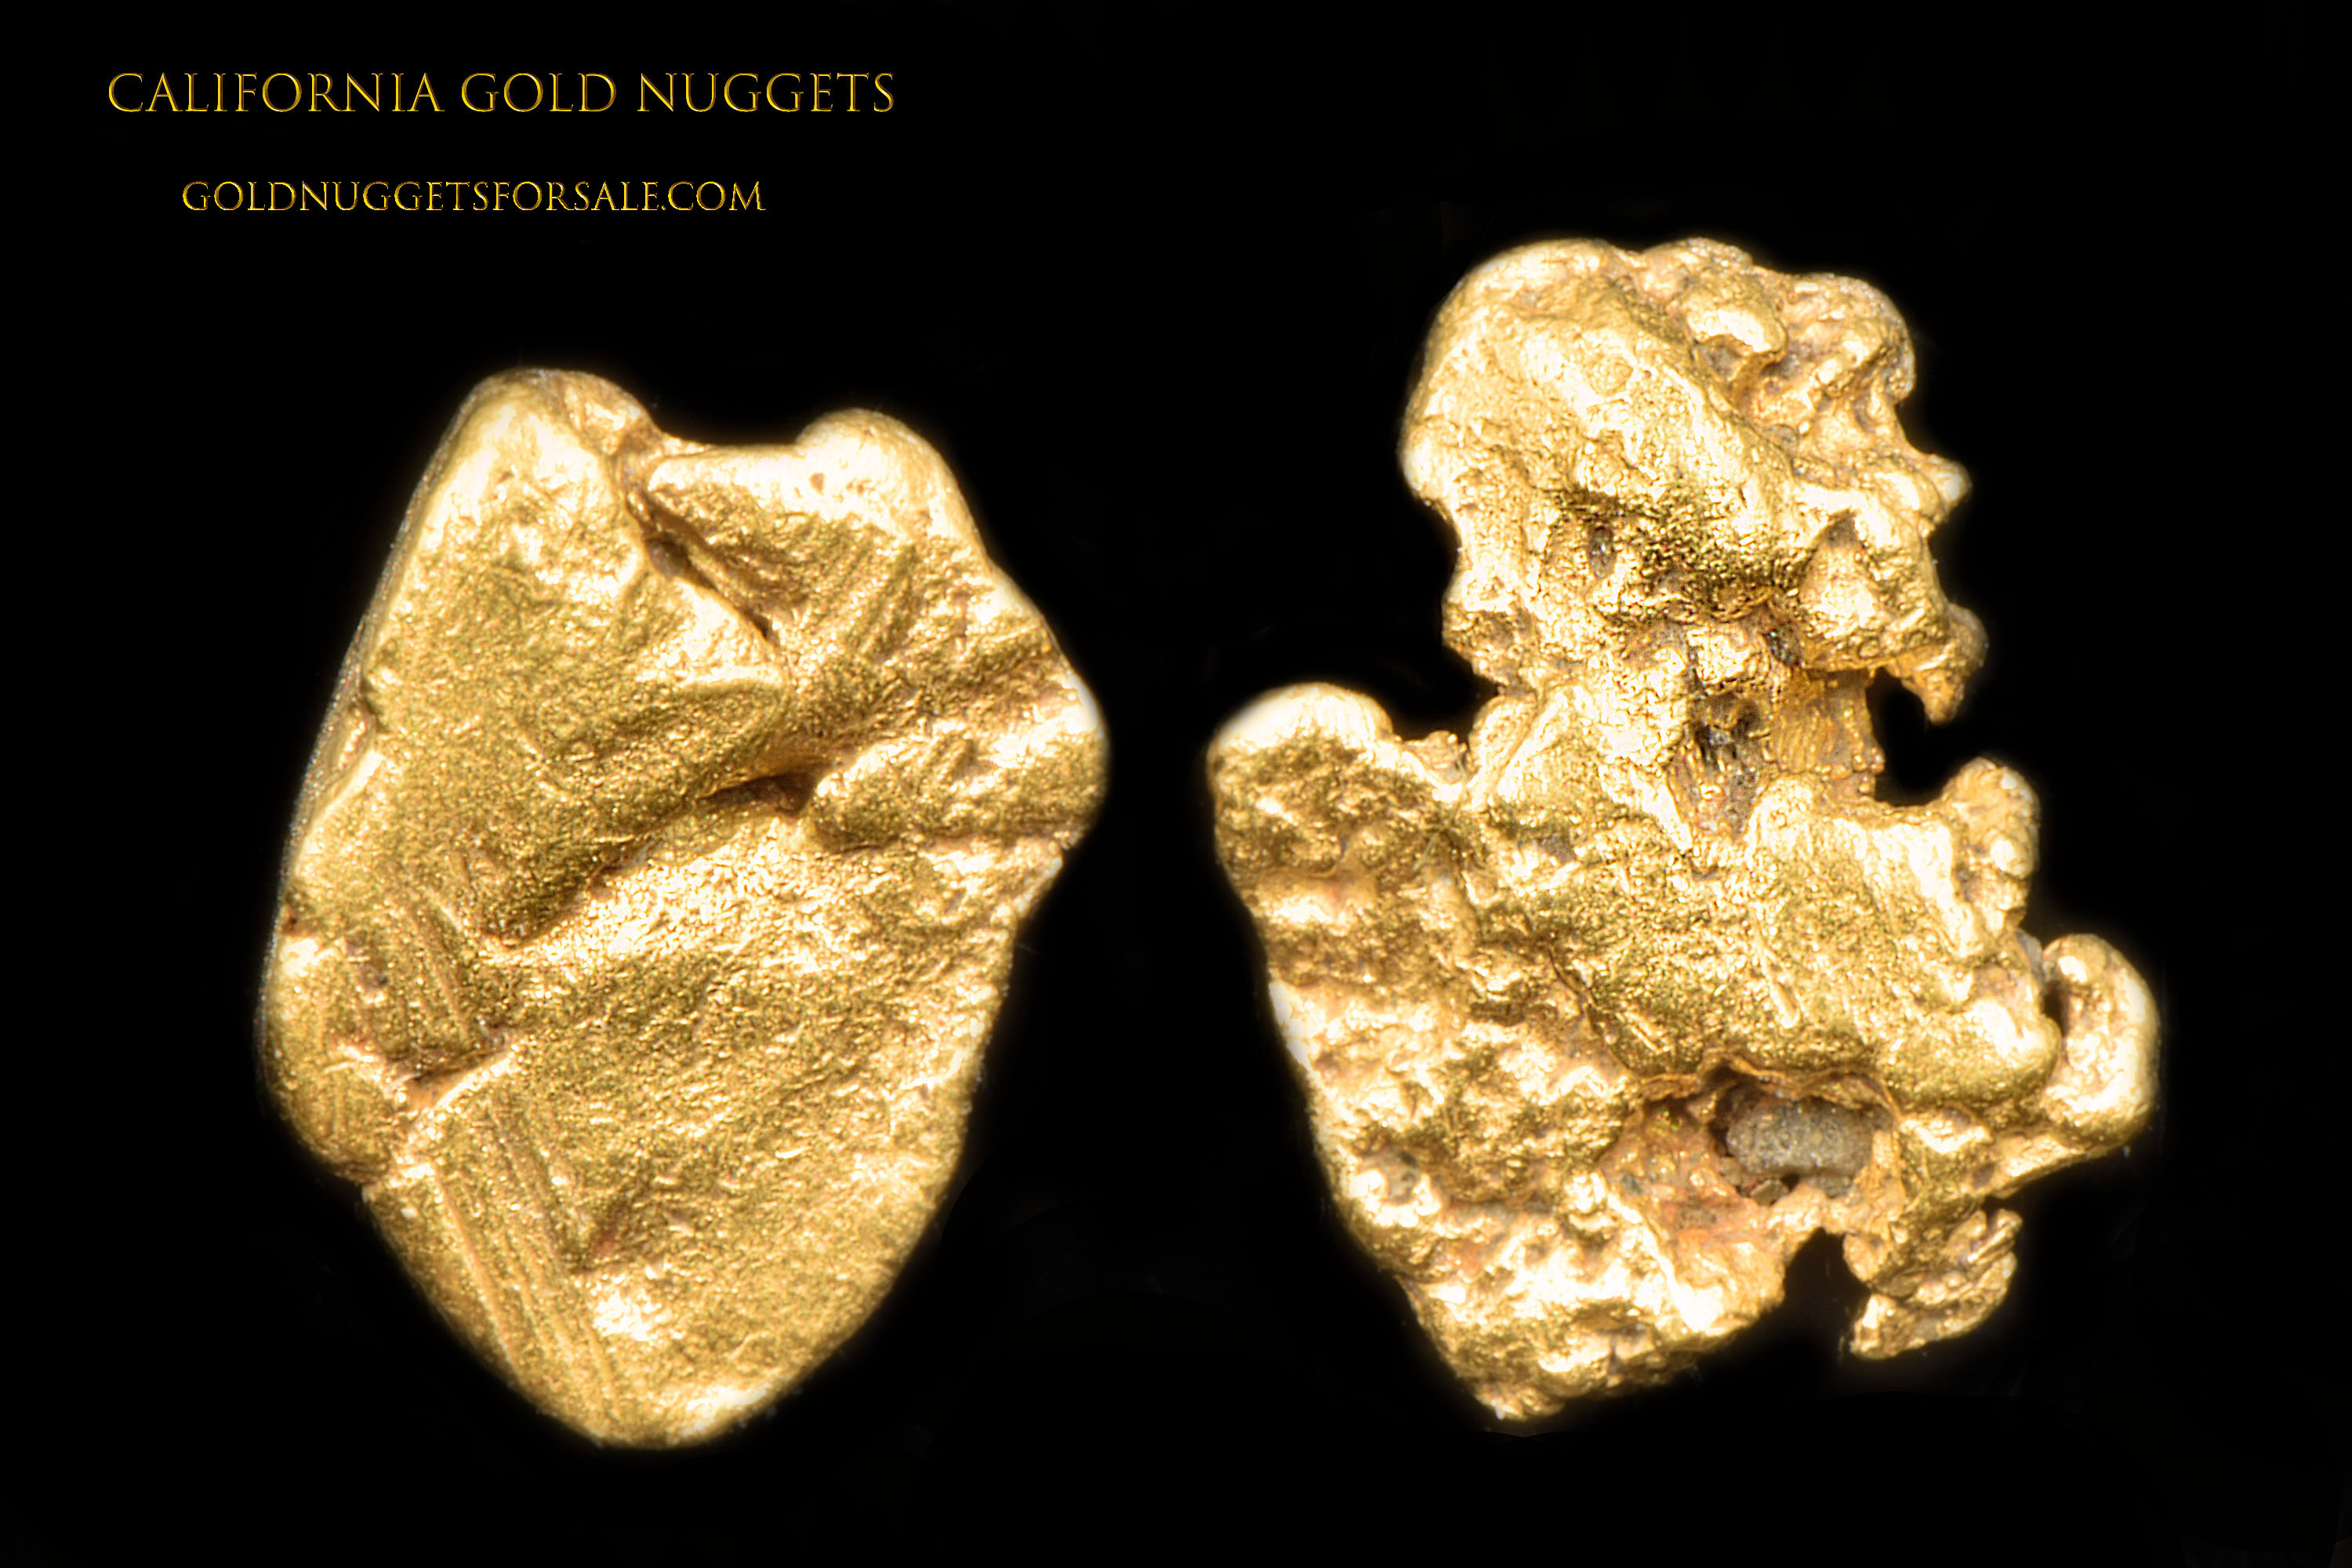 A pair of Jewelry Grade California Gold Nuggets